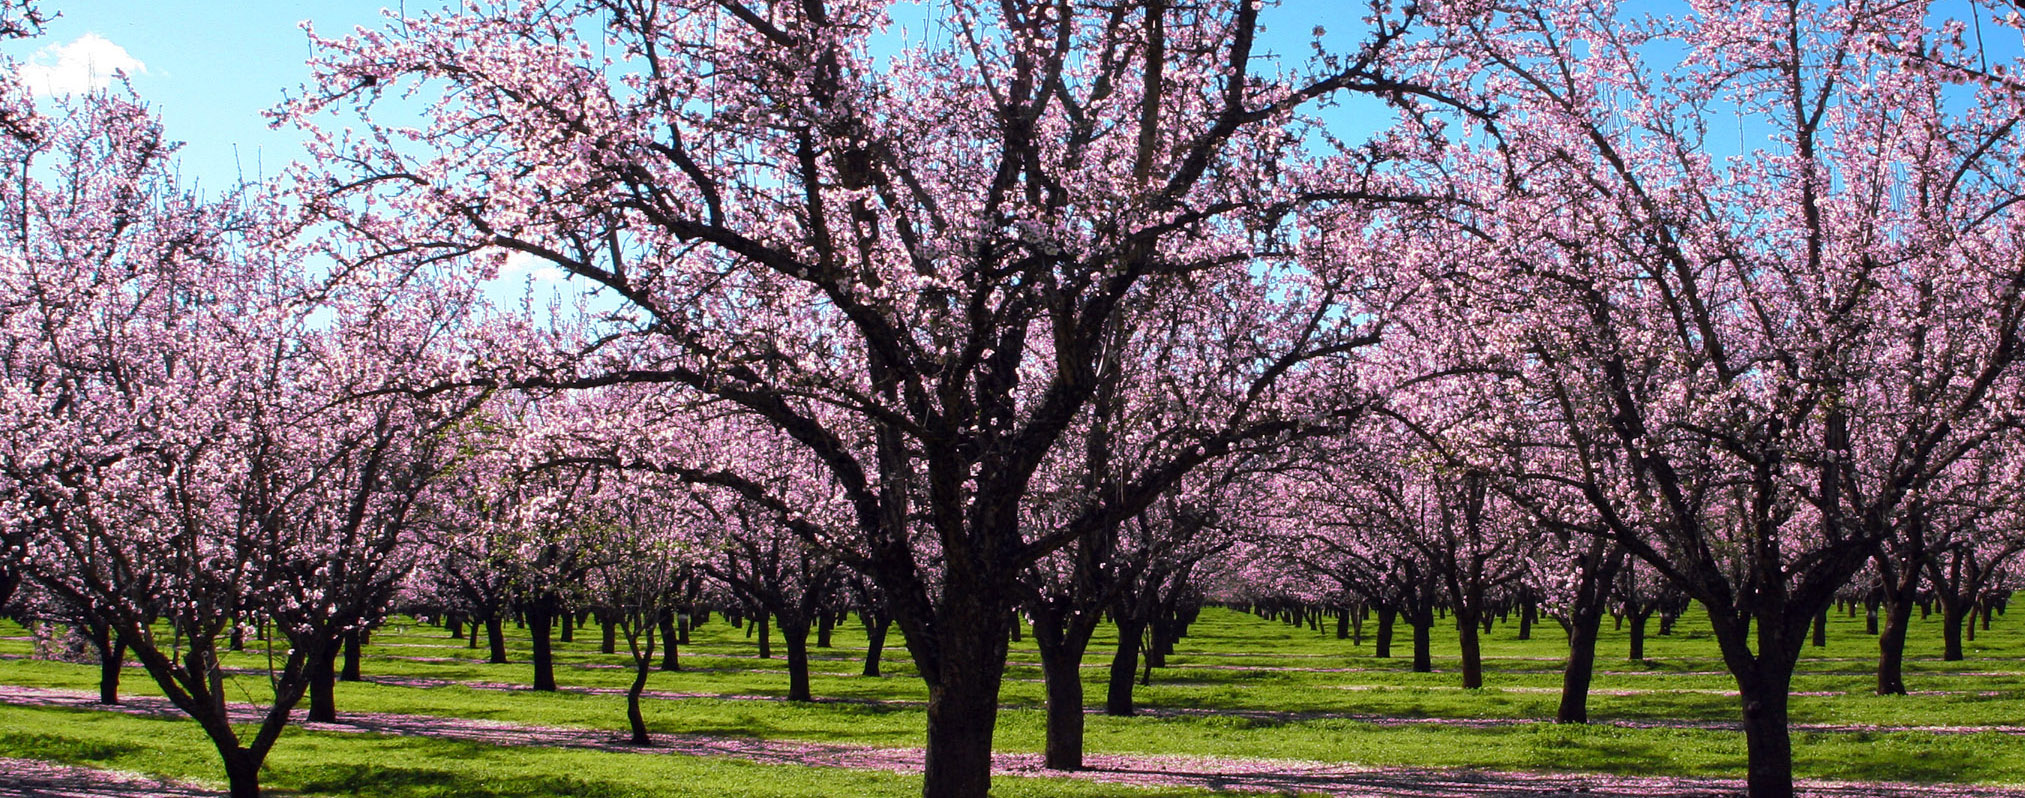 925.93 Kb - Almond Tree #2159995